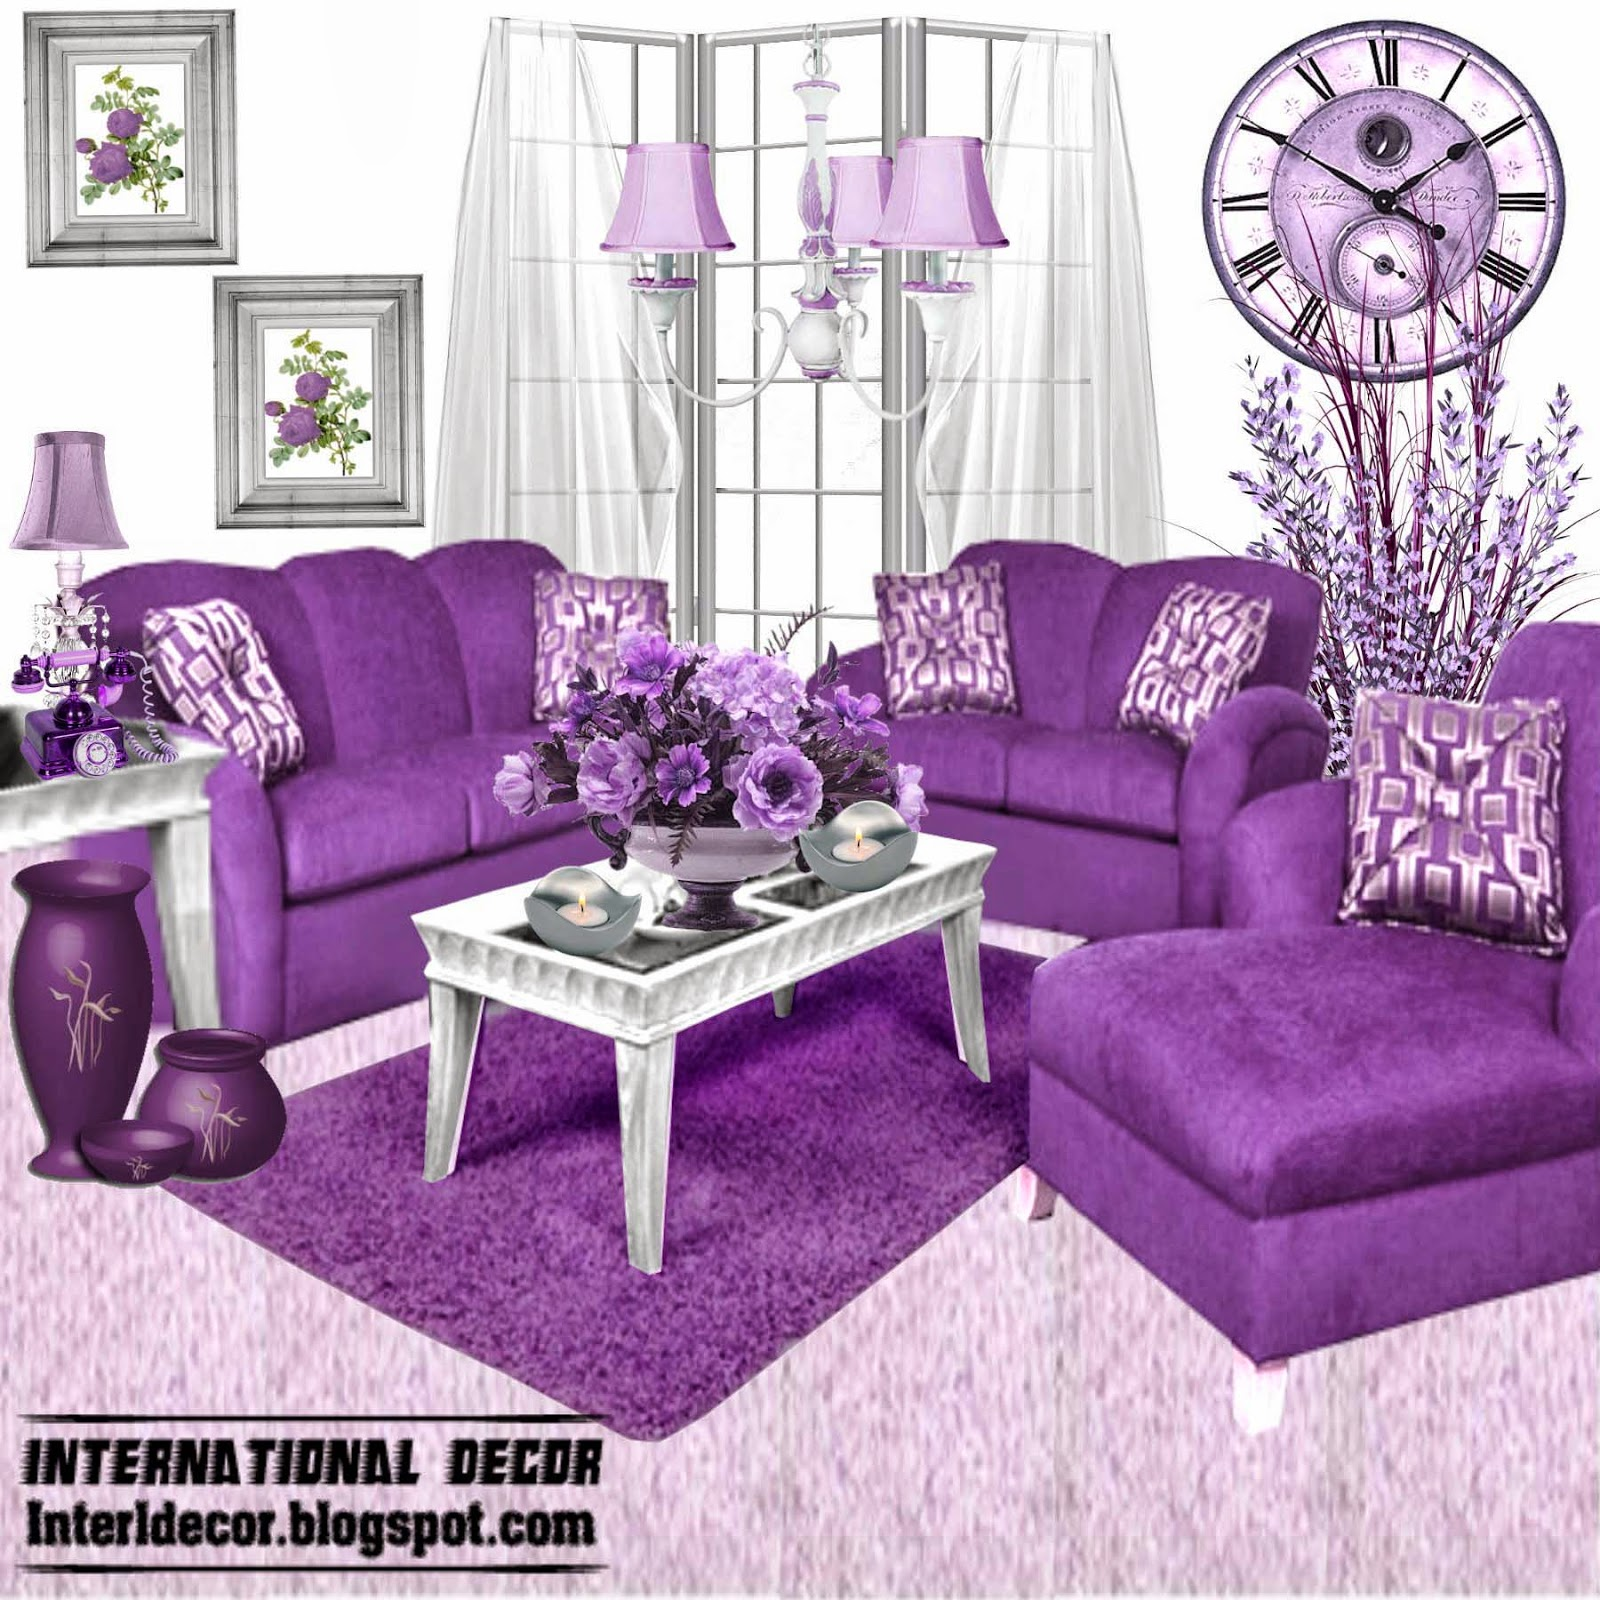 Purple furniture for the home pinterest purple for Sofa set designs for small living room